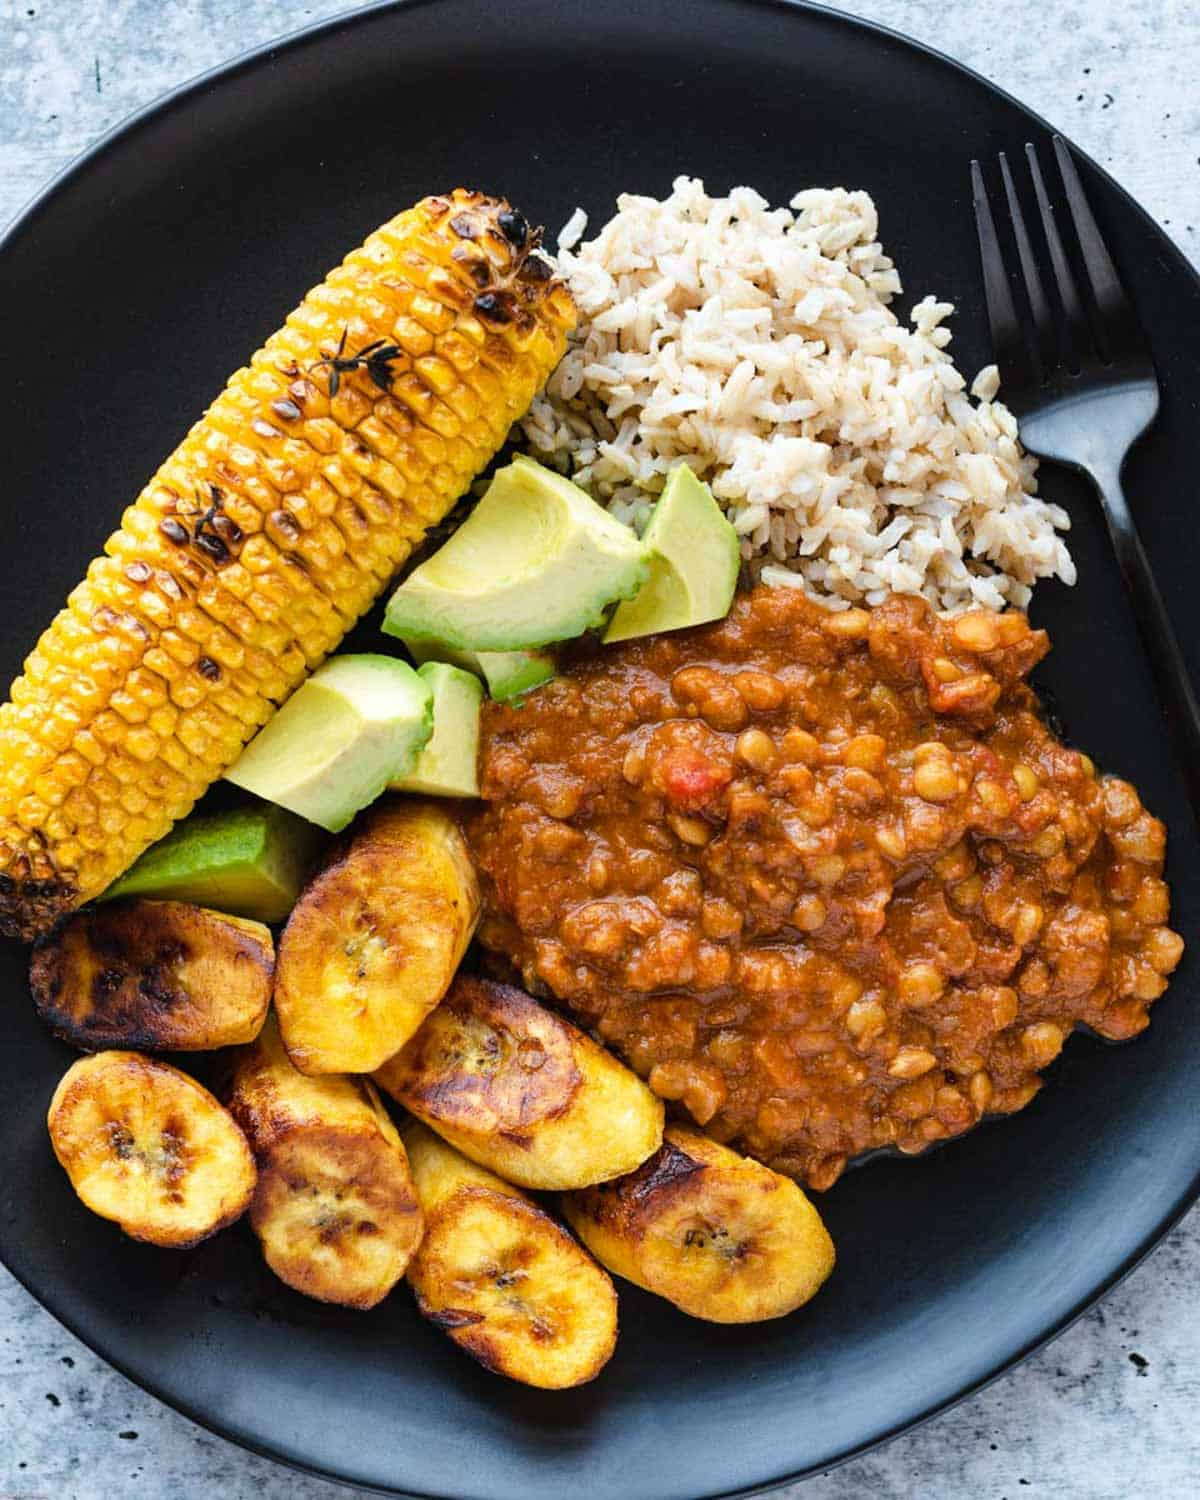 Lentil chili, roasted corn on the cob, diced avocado, crispy golden plantain, and brown rice.